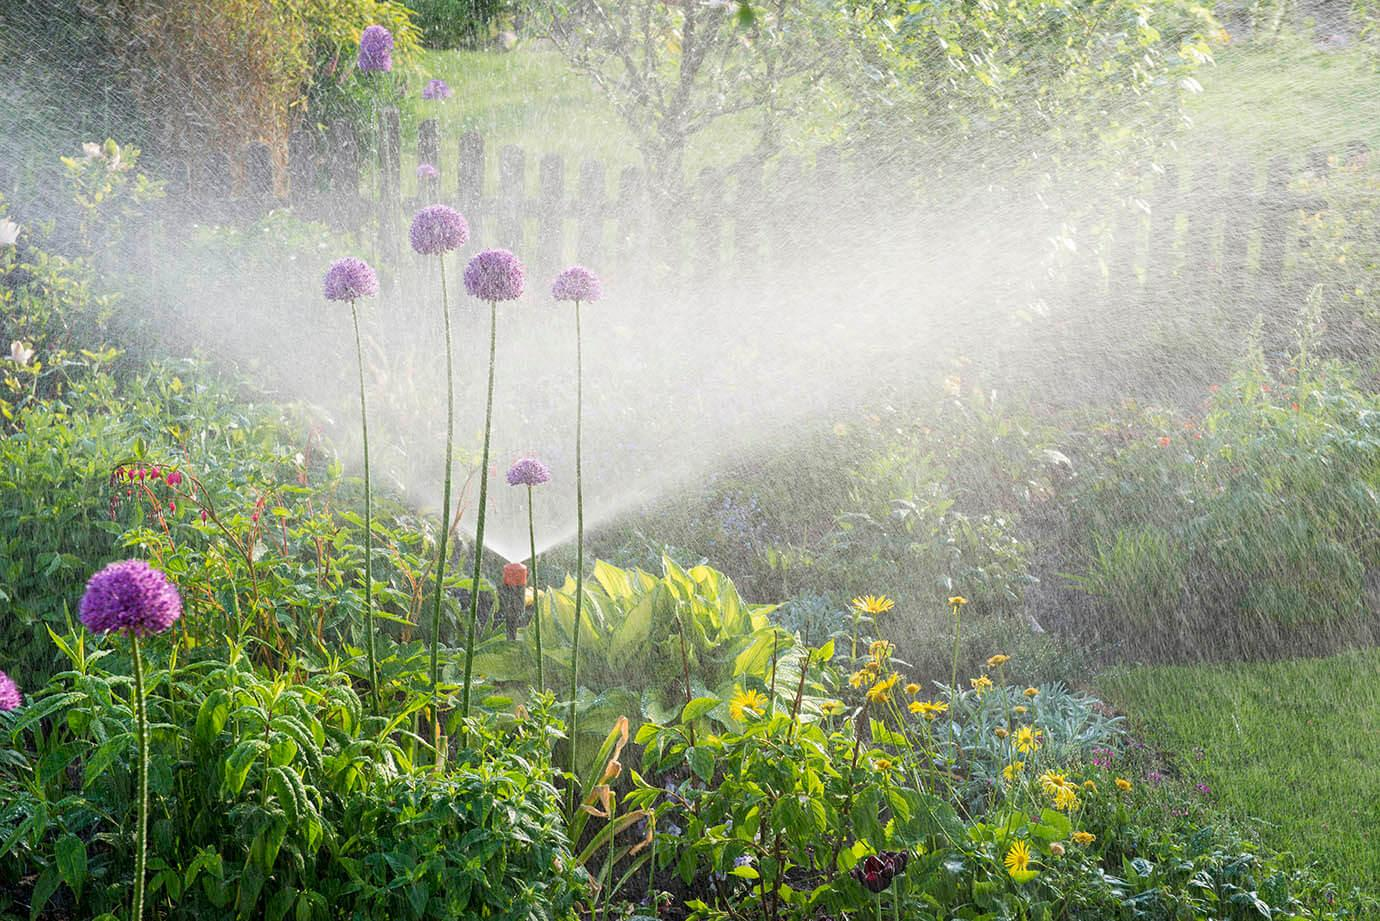 A garden being watered by a sprinkler